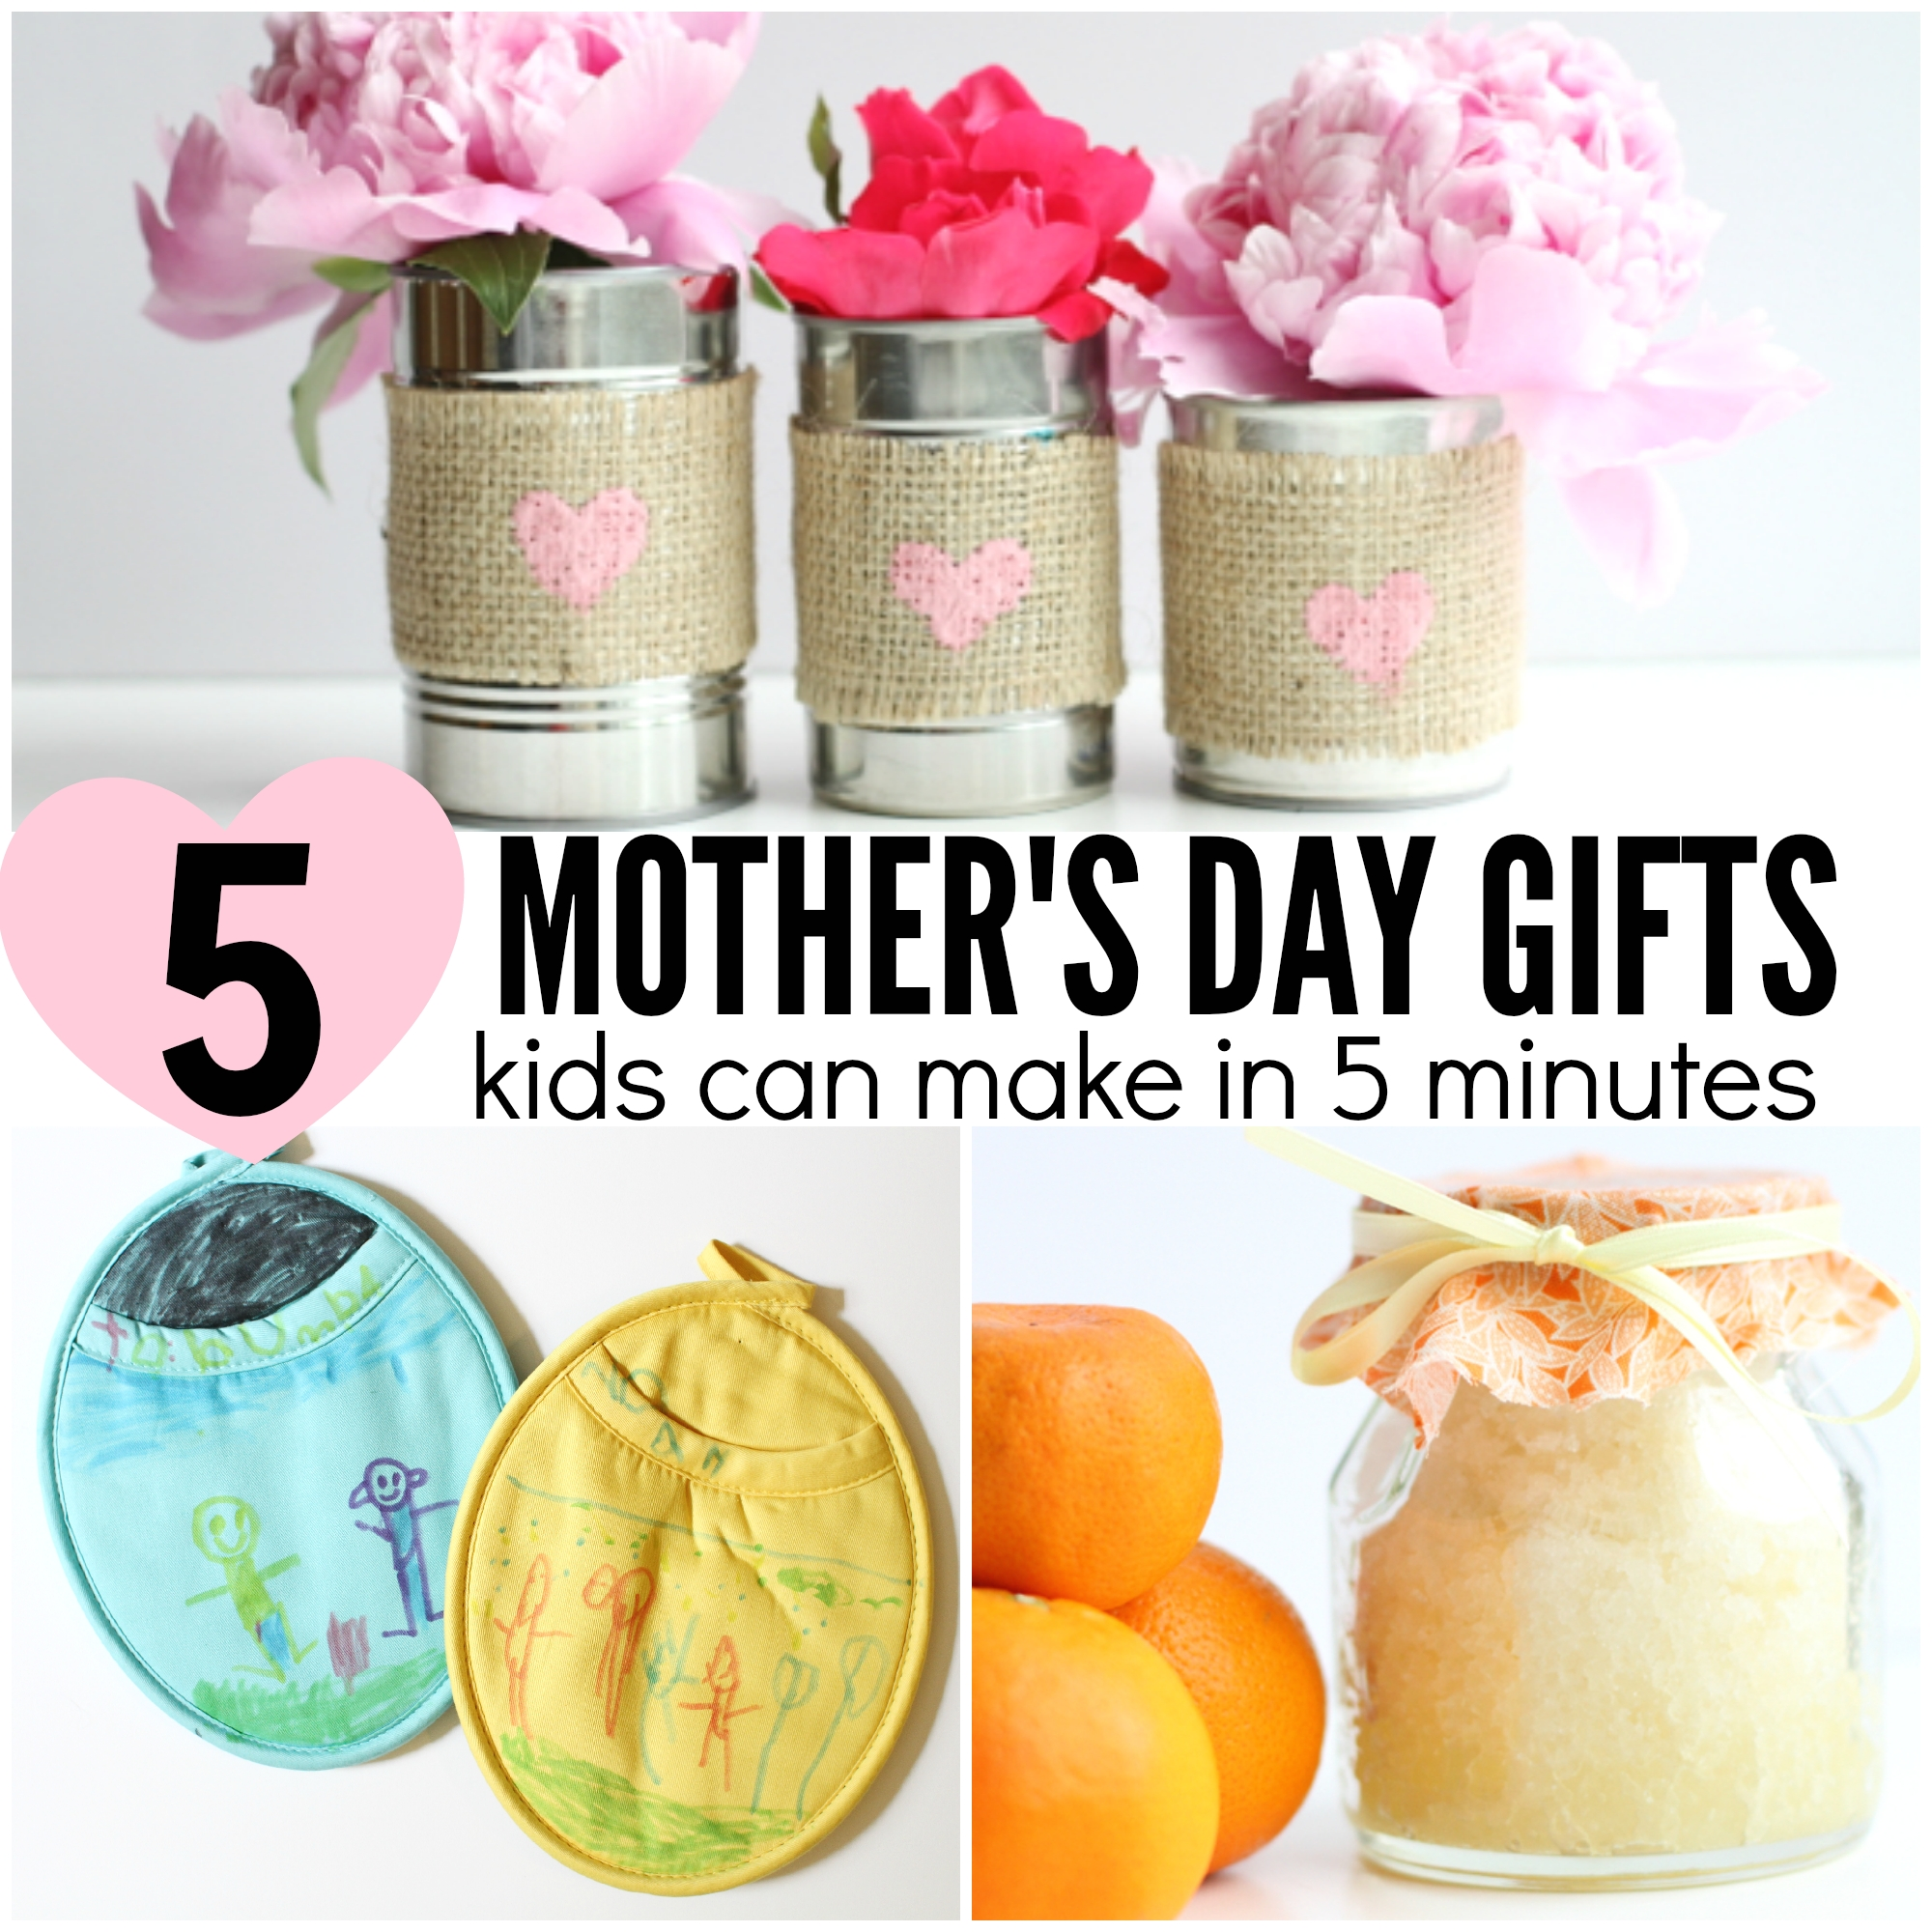 10 Stunning Mothers Day Ideas From Kids 5 mothers day gifts kids can make in 5 minutes or less i can 2020